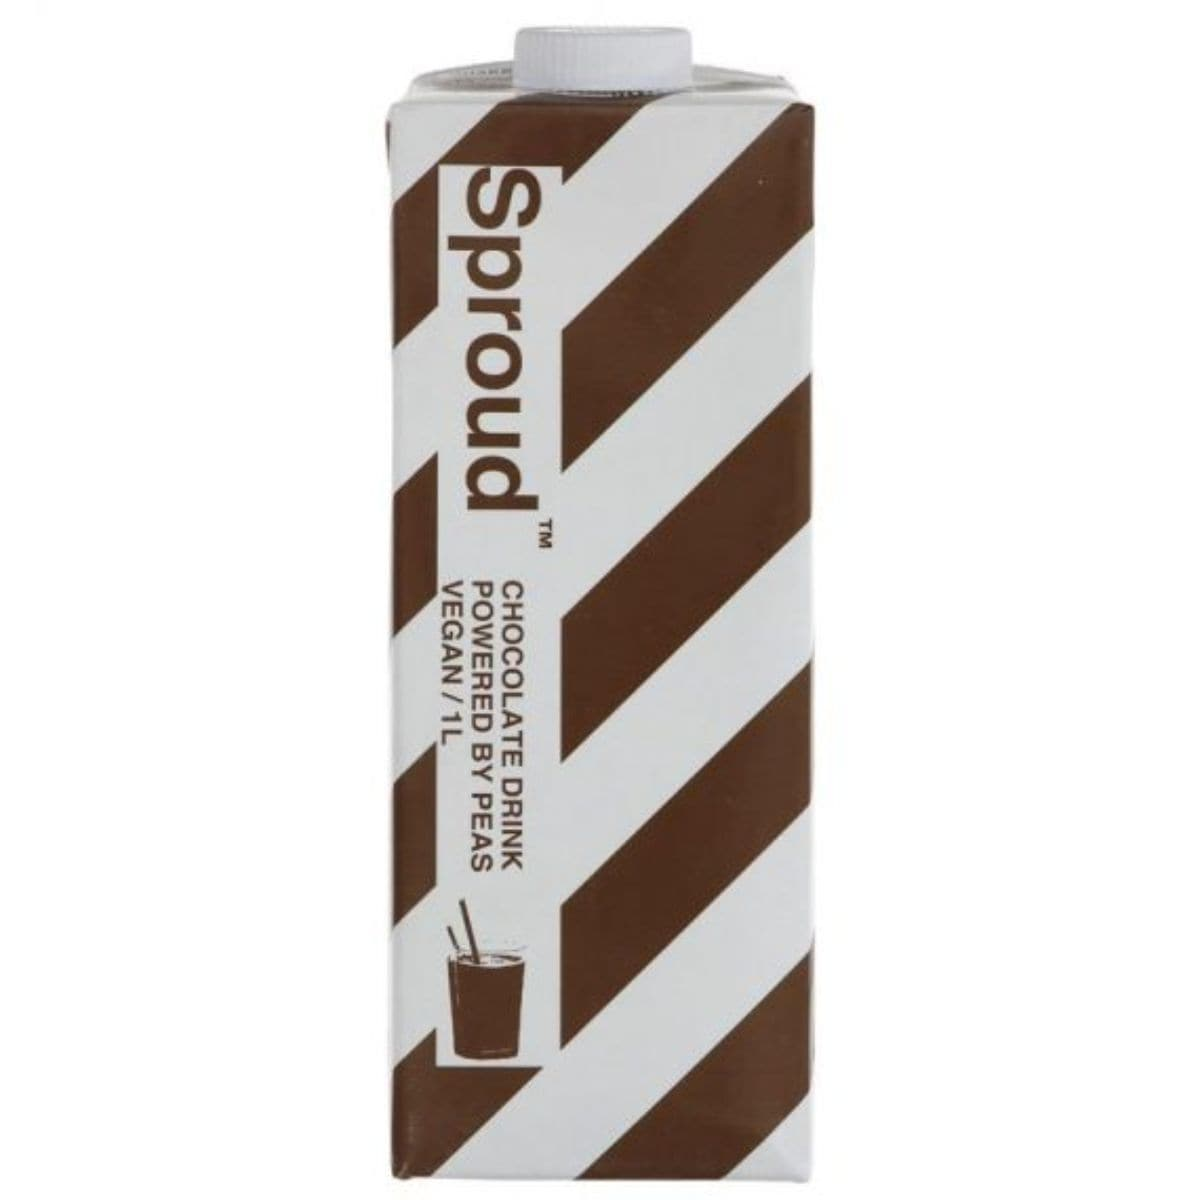 Sproud Chocolate Pea Protein Milk Alternative Drink - 1Ltr - SoulBia